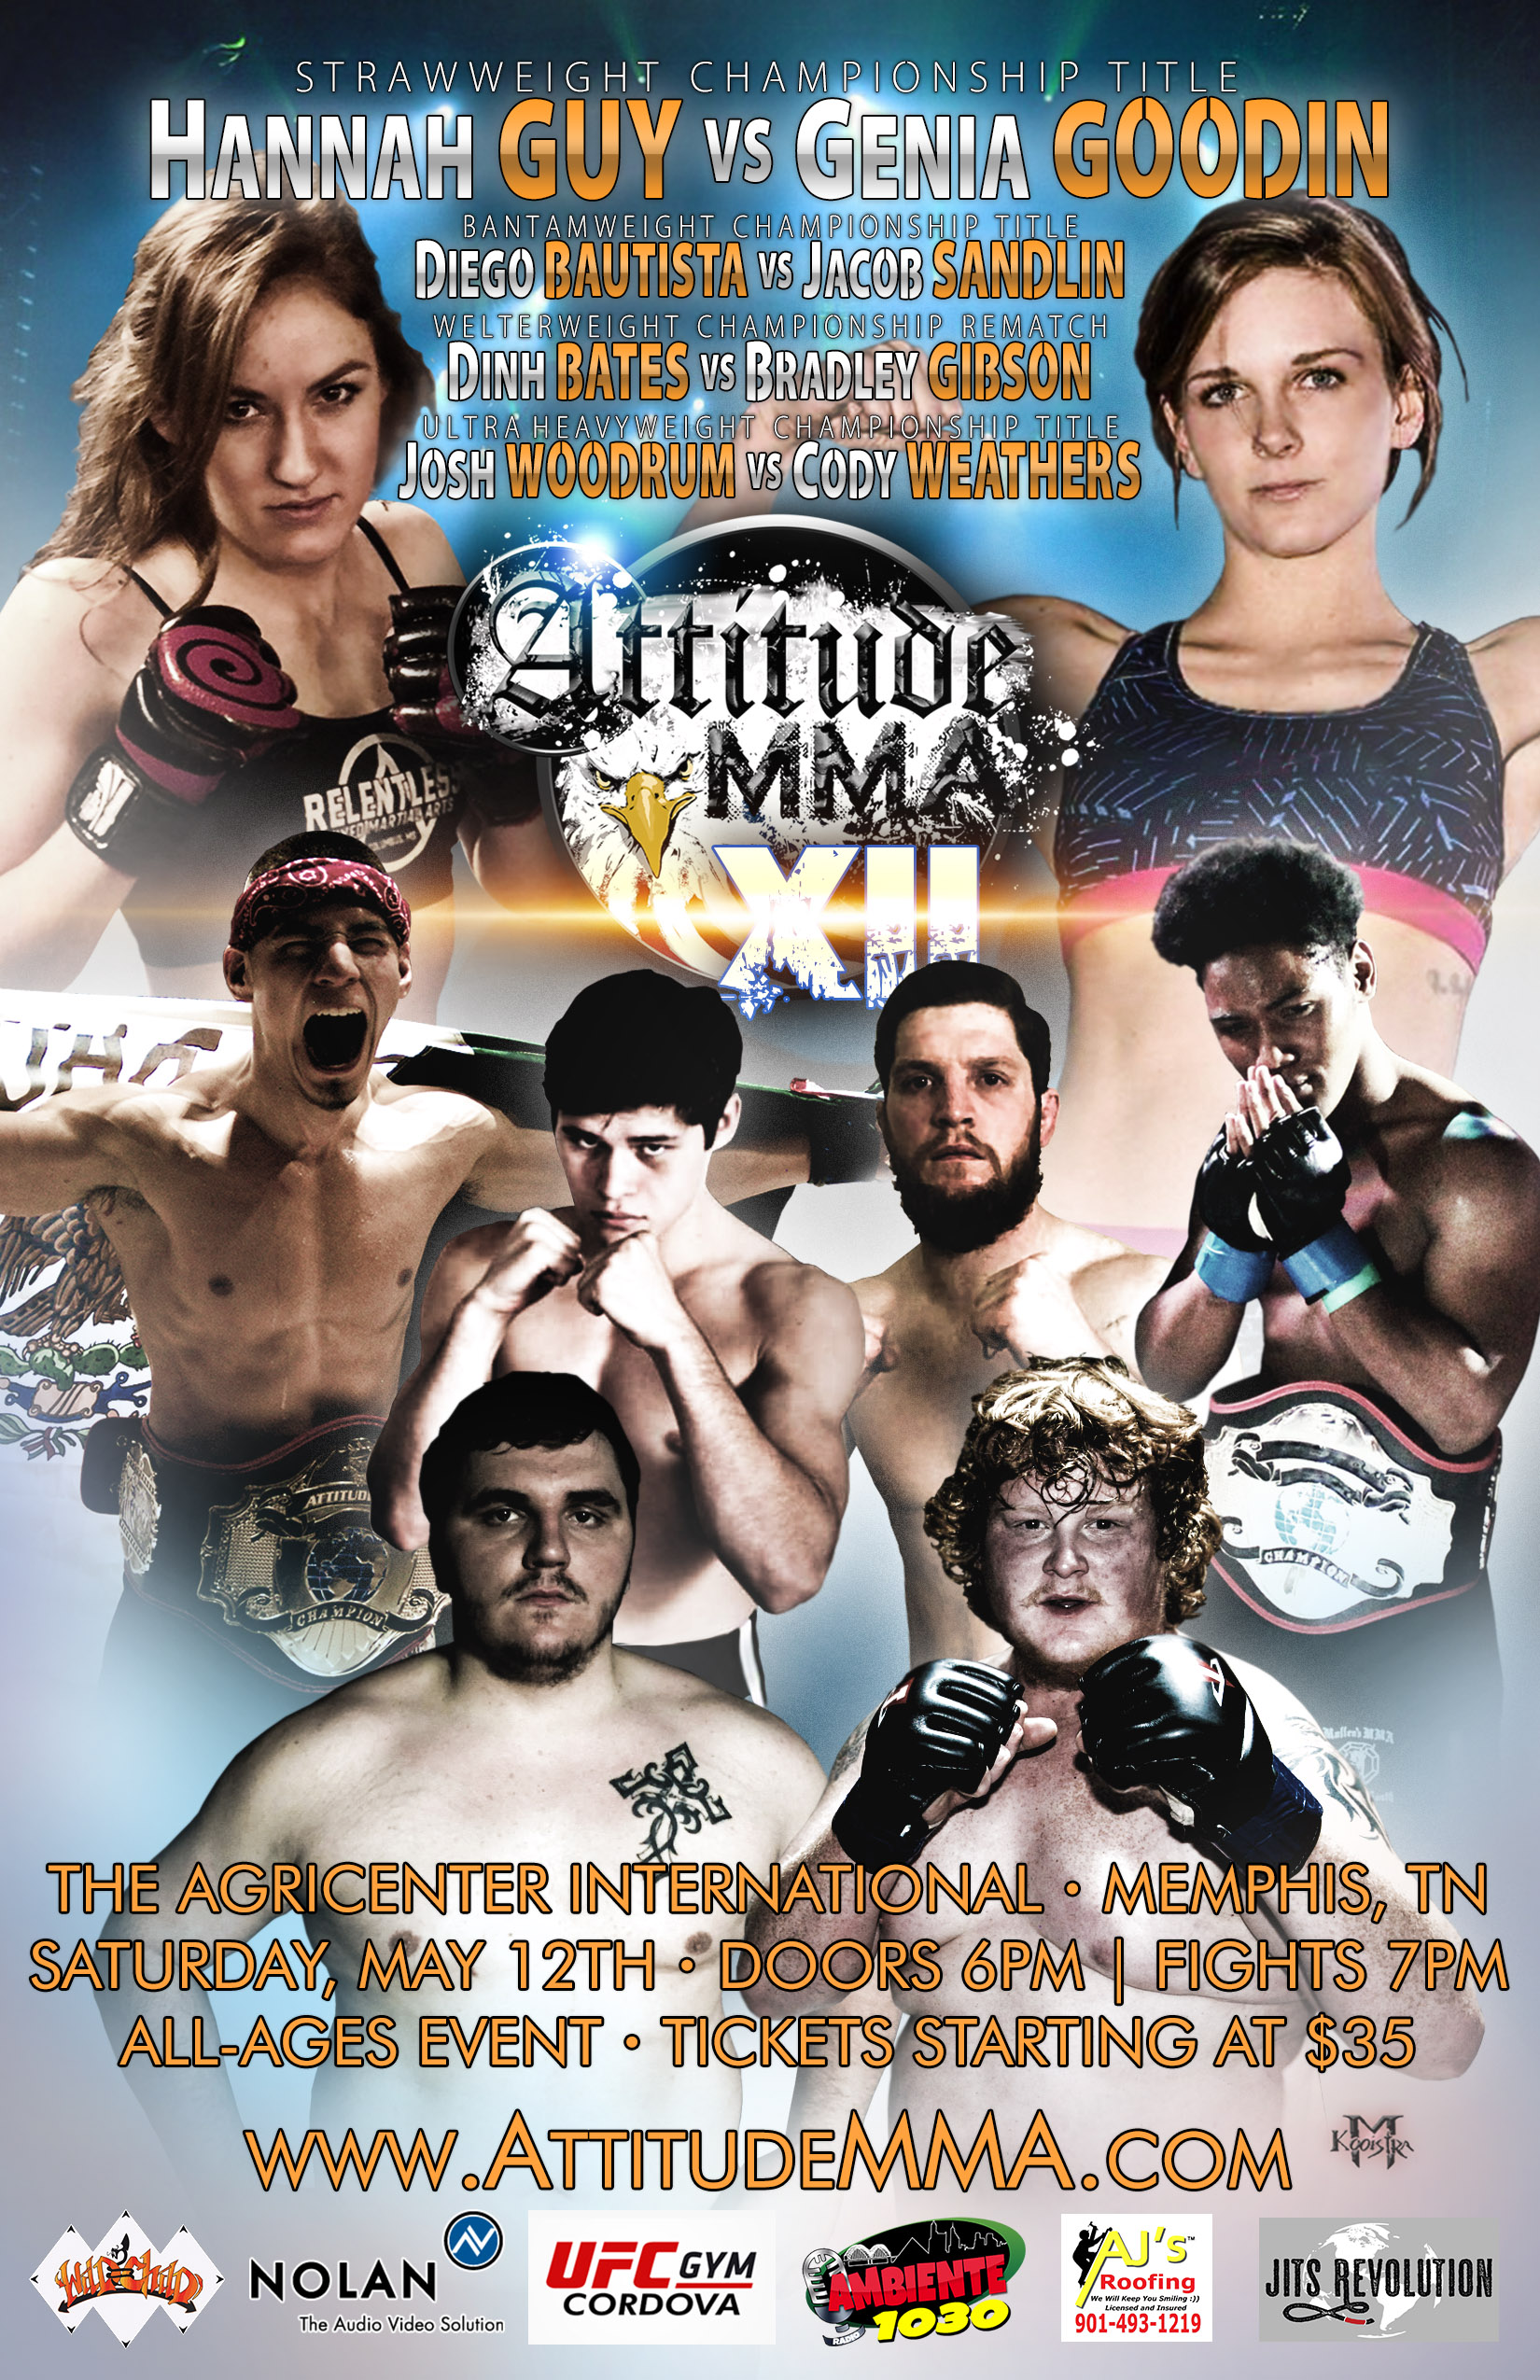 Attitude MMA Fights XII at The Agricenter International May 12, 2018